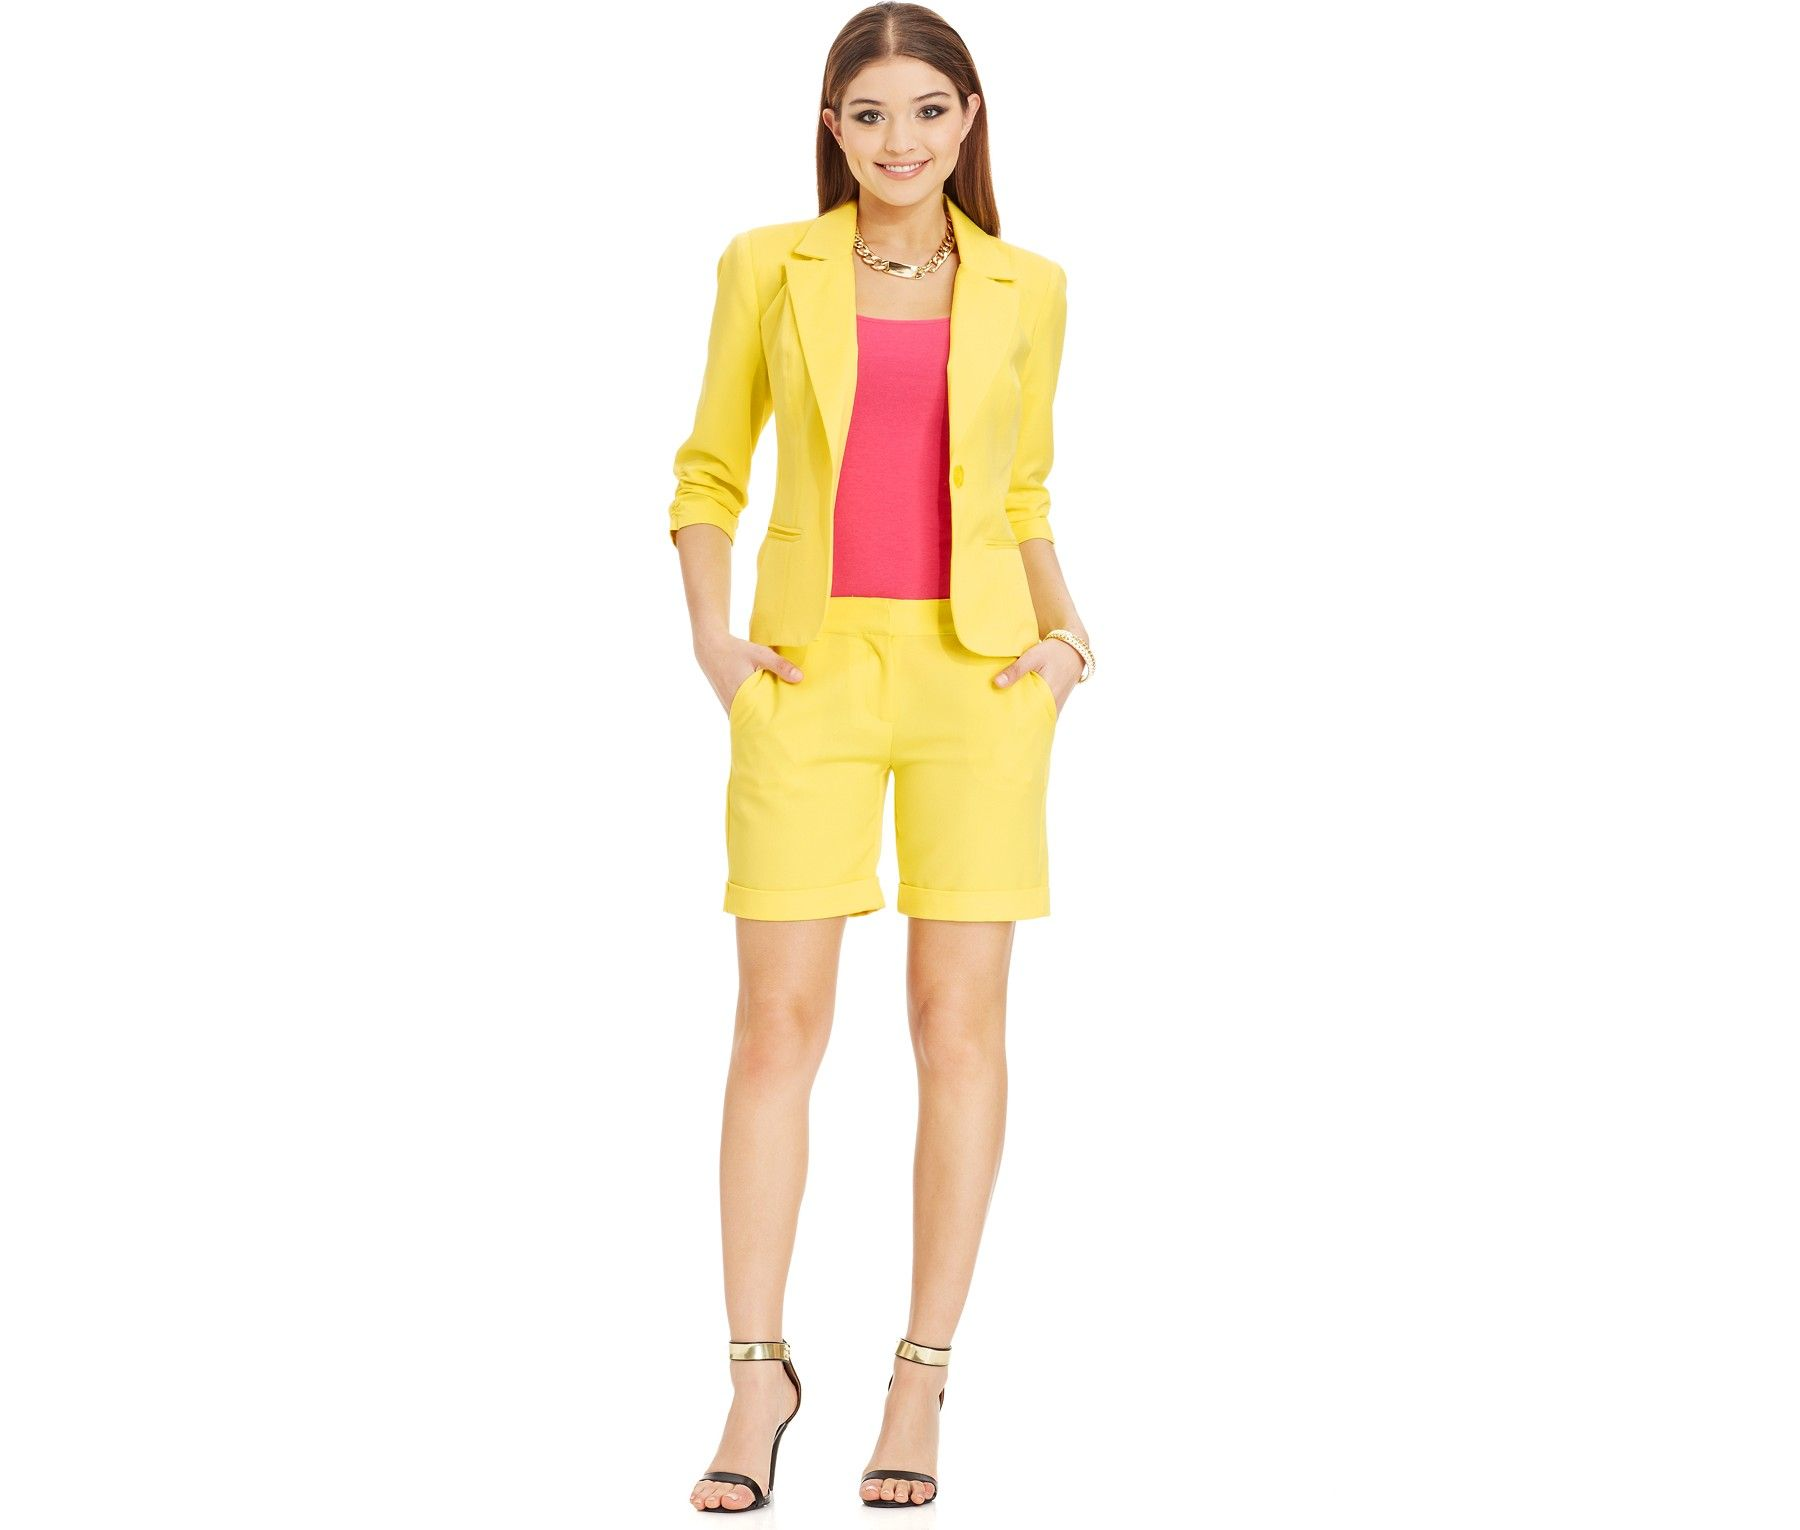 XOXO Juniors' Blazer & Cuffed Shorts - Juniors Suits & Suit ...